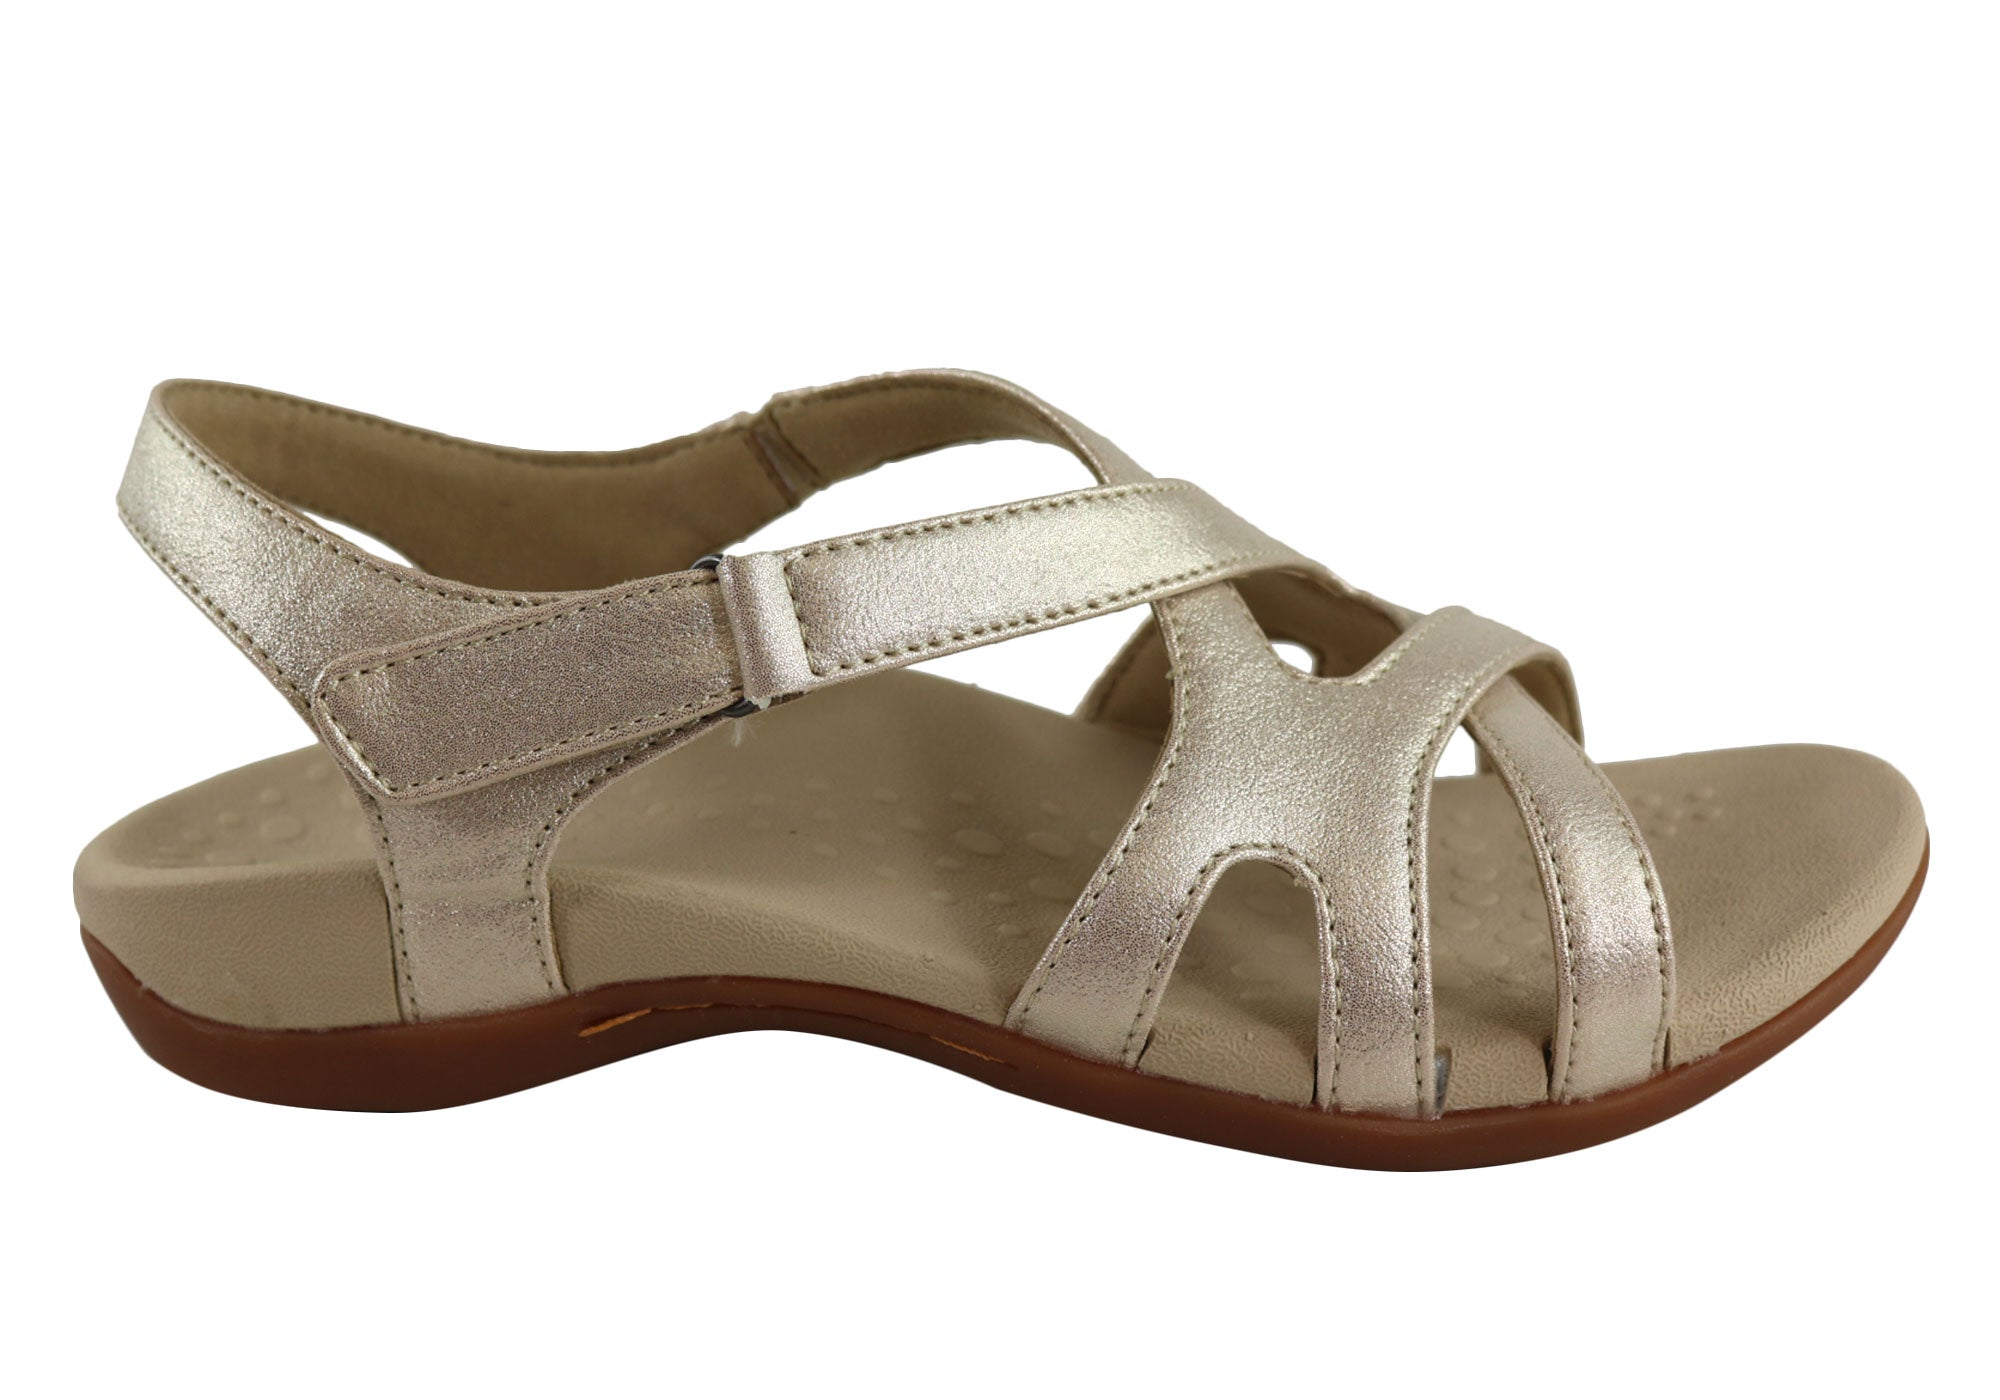 NEW-SCHOLL-ORTHAHEEL-AMY-WOMENS-SUPPORTIVE-ORTHOTIC-COMFORT-FLAT-SANDALS